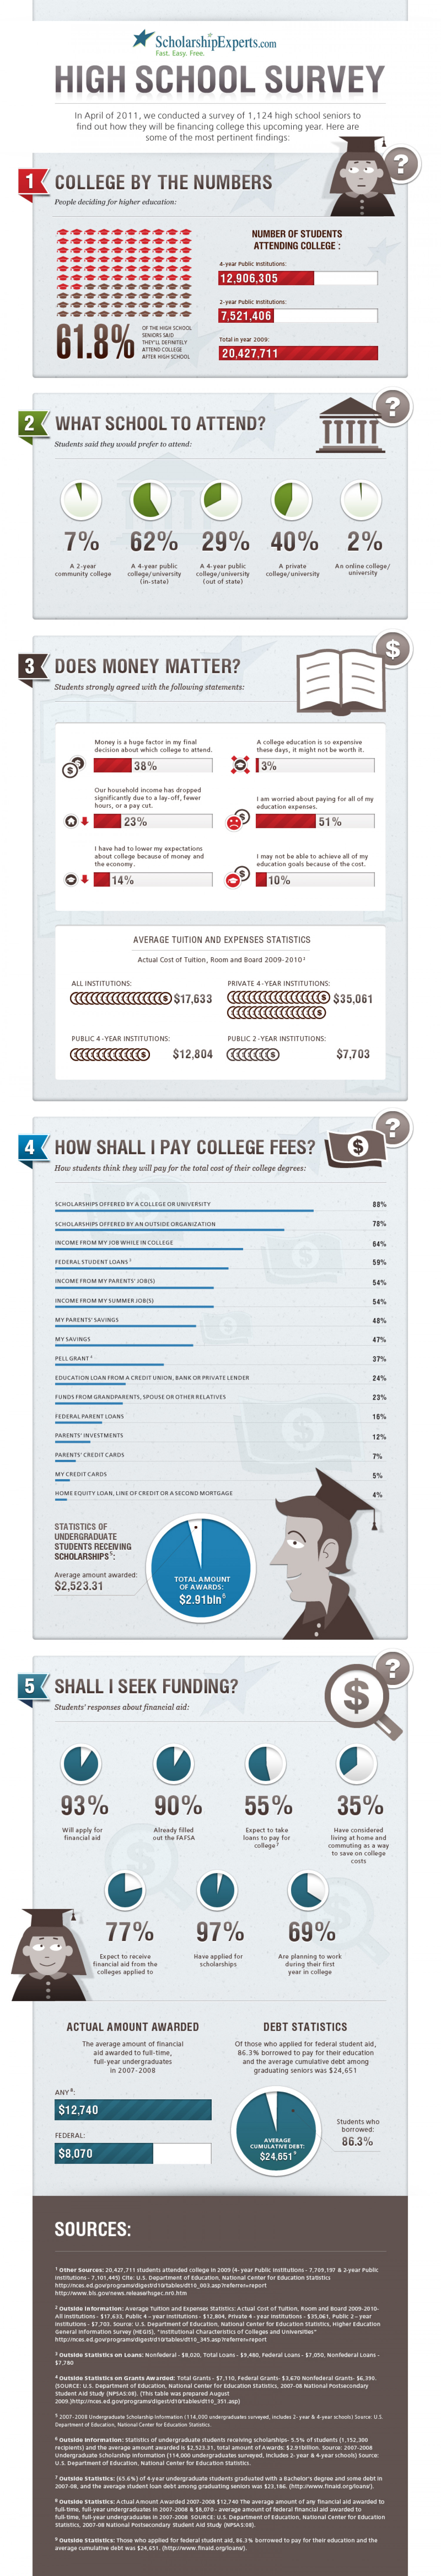 How Students Pay For College: The 2011 Edition Infographic